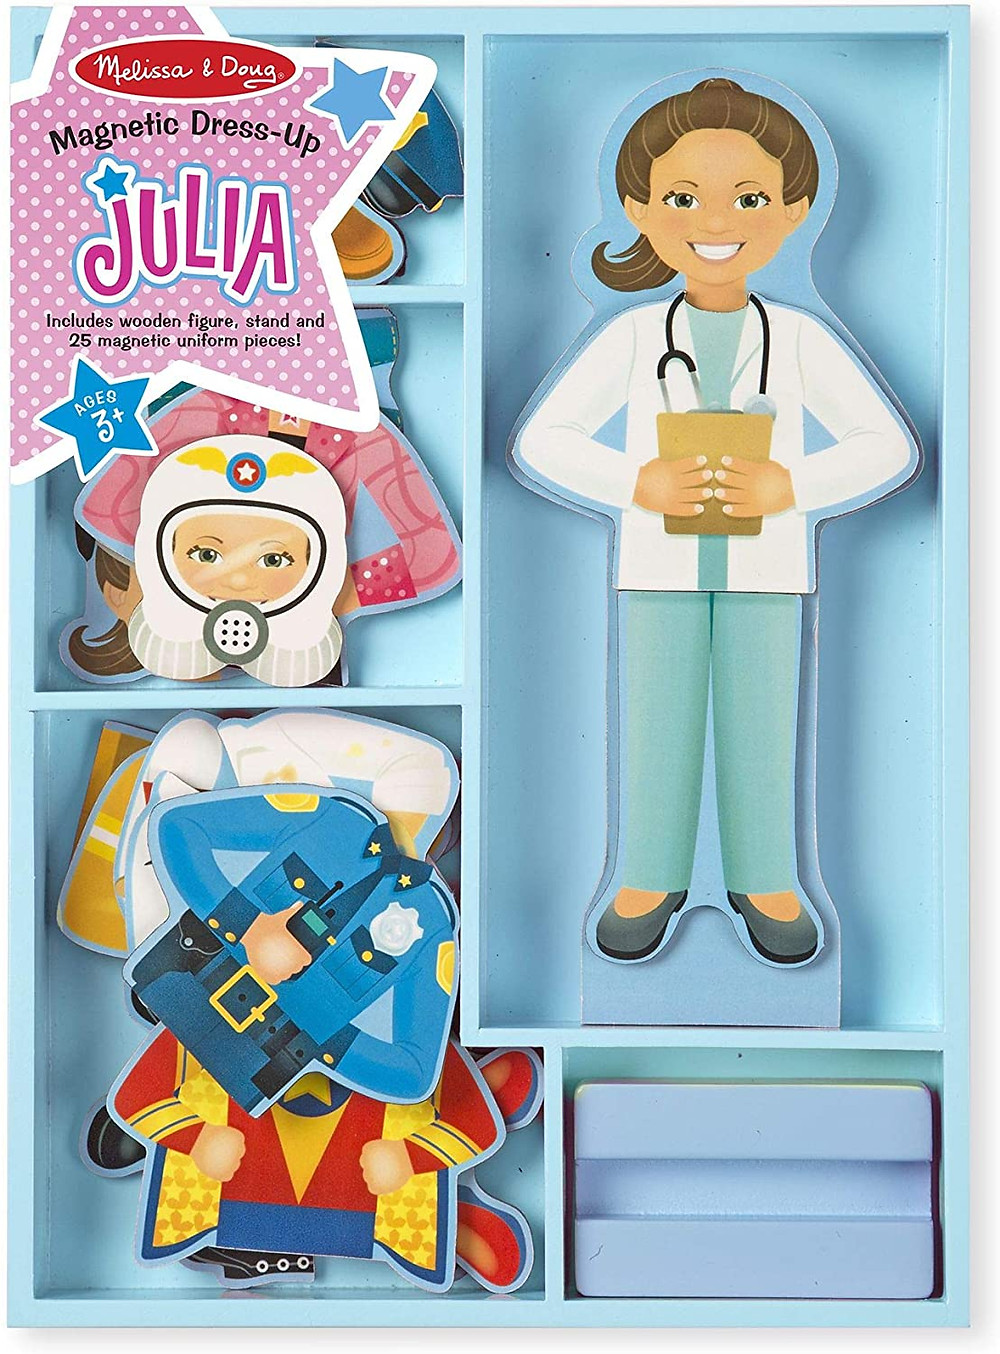 product photo of melissa and doug magnetic dress-up set